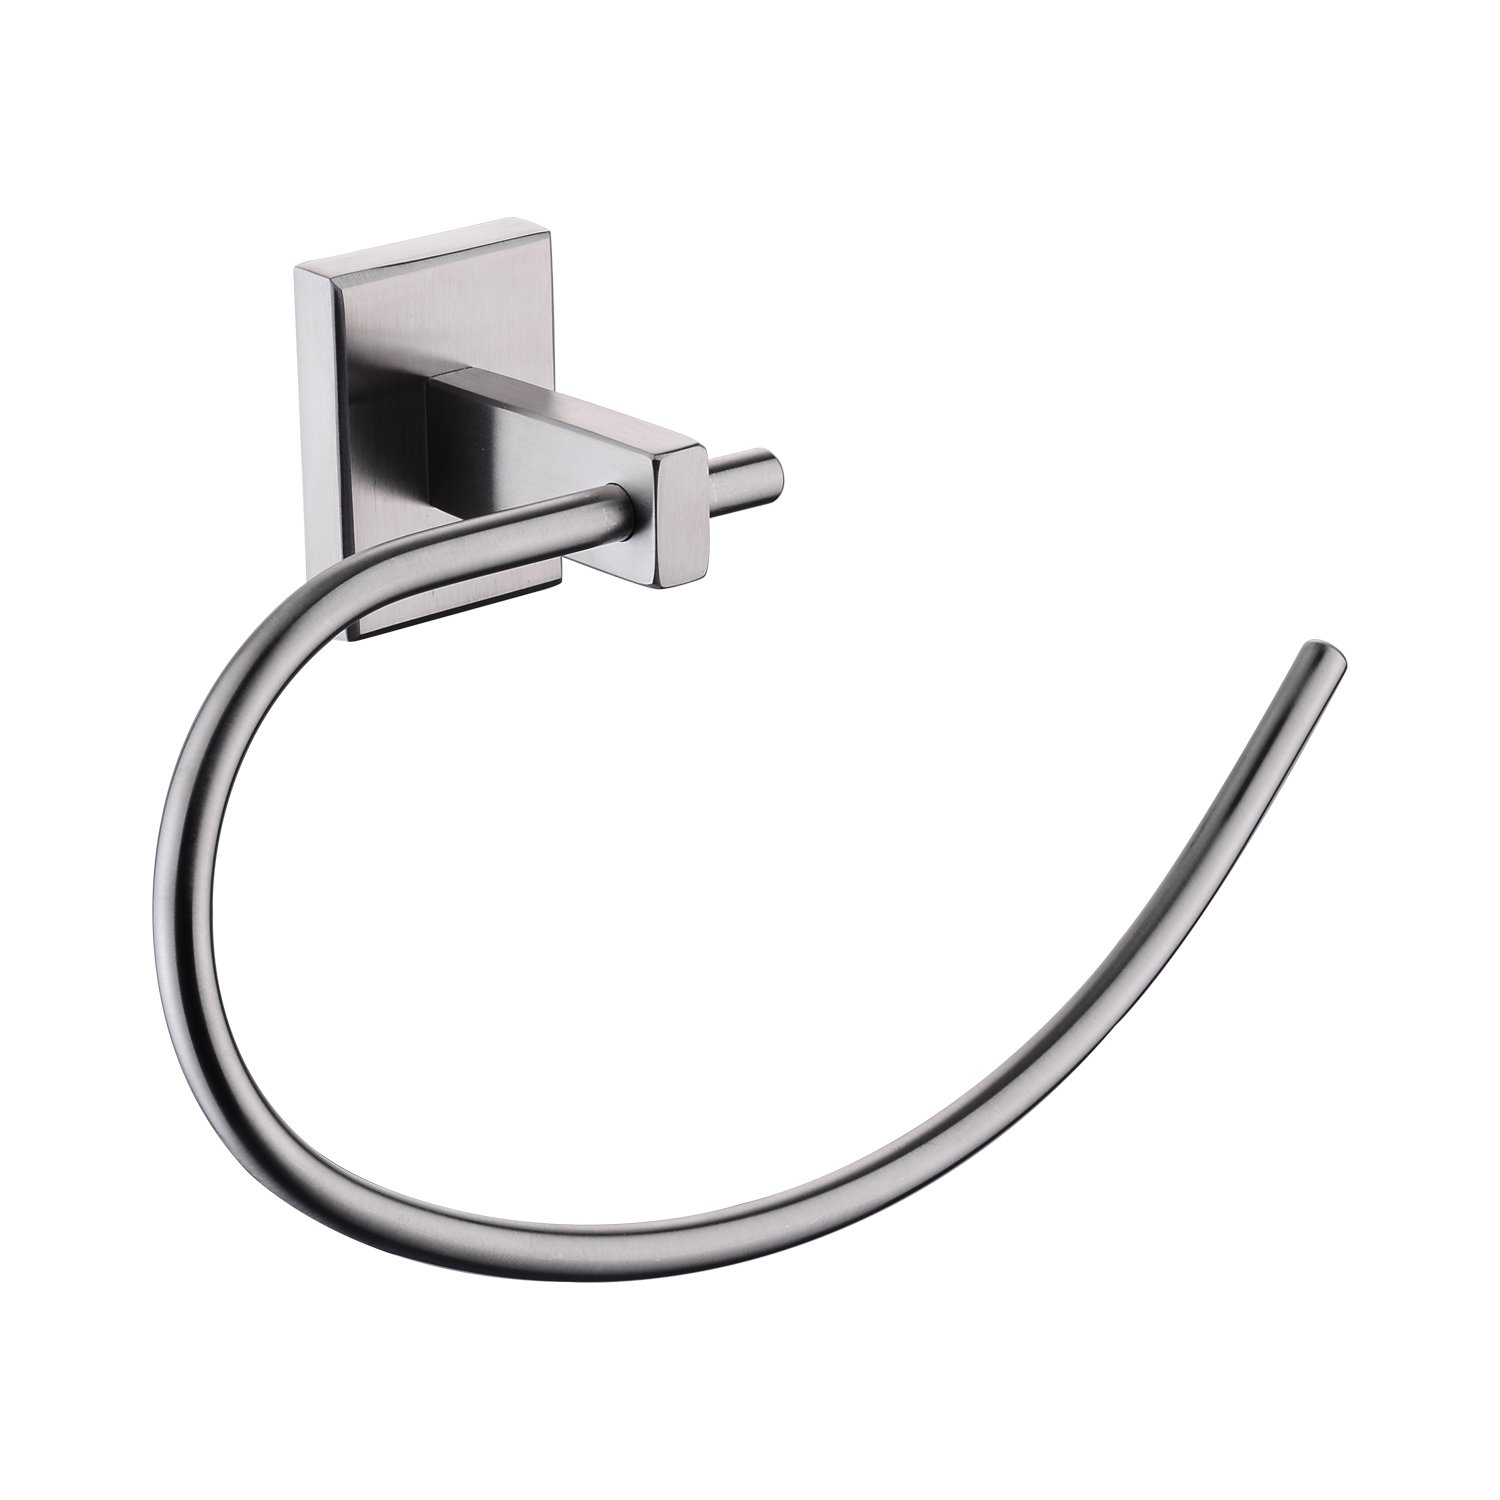 BULUXE SUS304 Stainless Steel Fashionable Bathroom Lavatory Towel Ring Wall Mount, Brushed Nickel